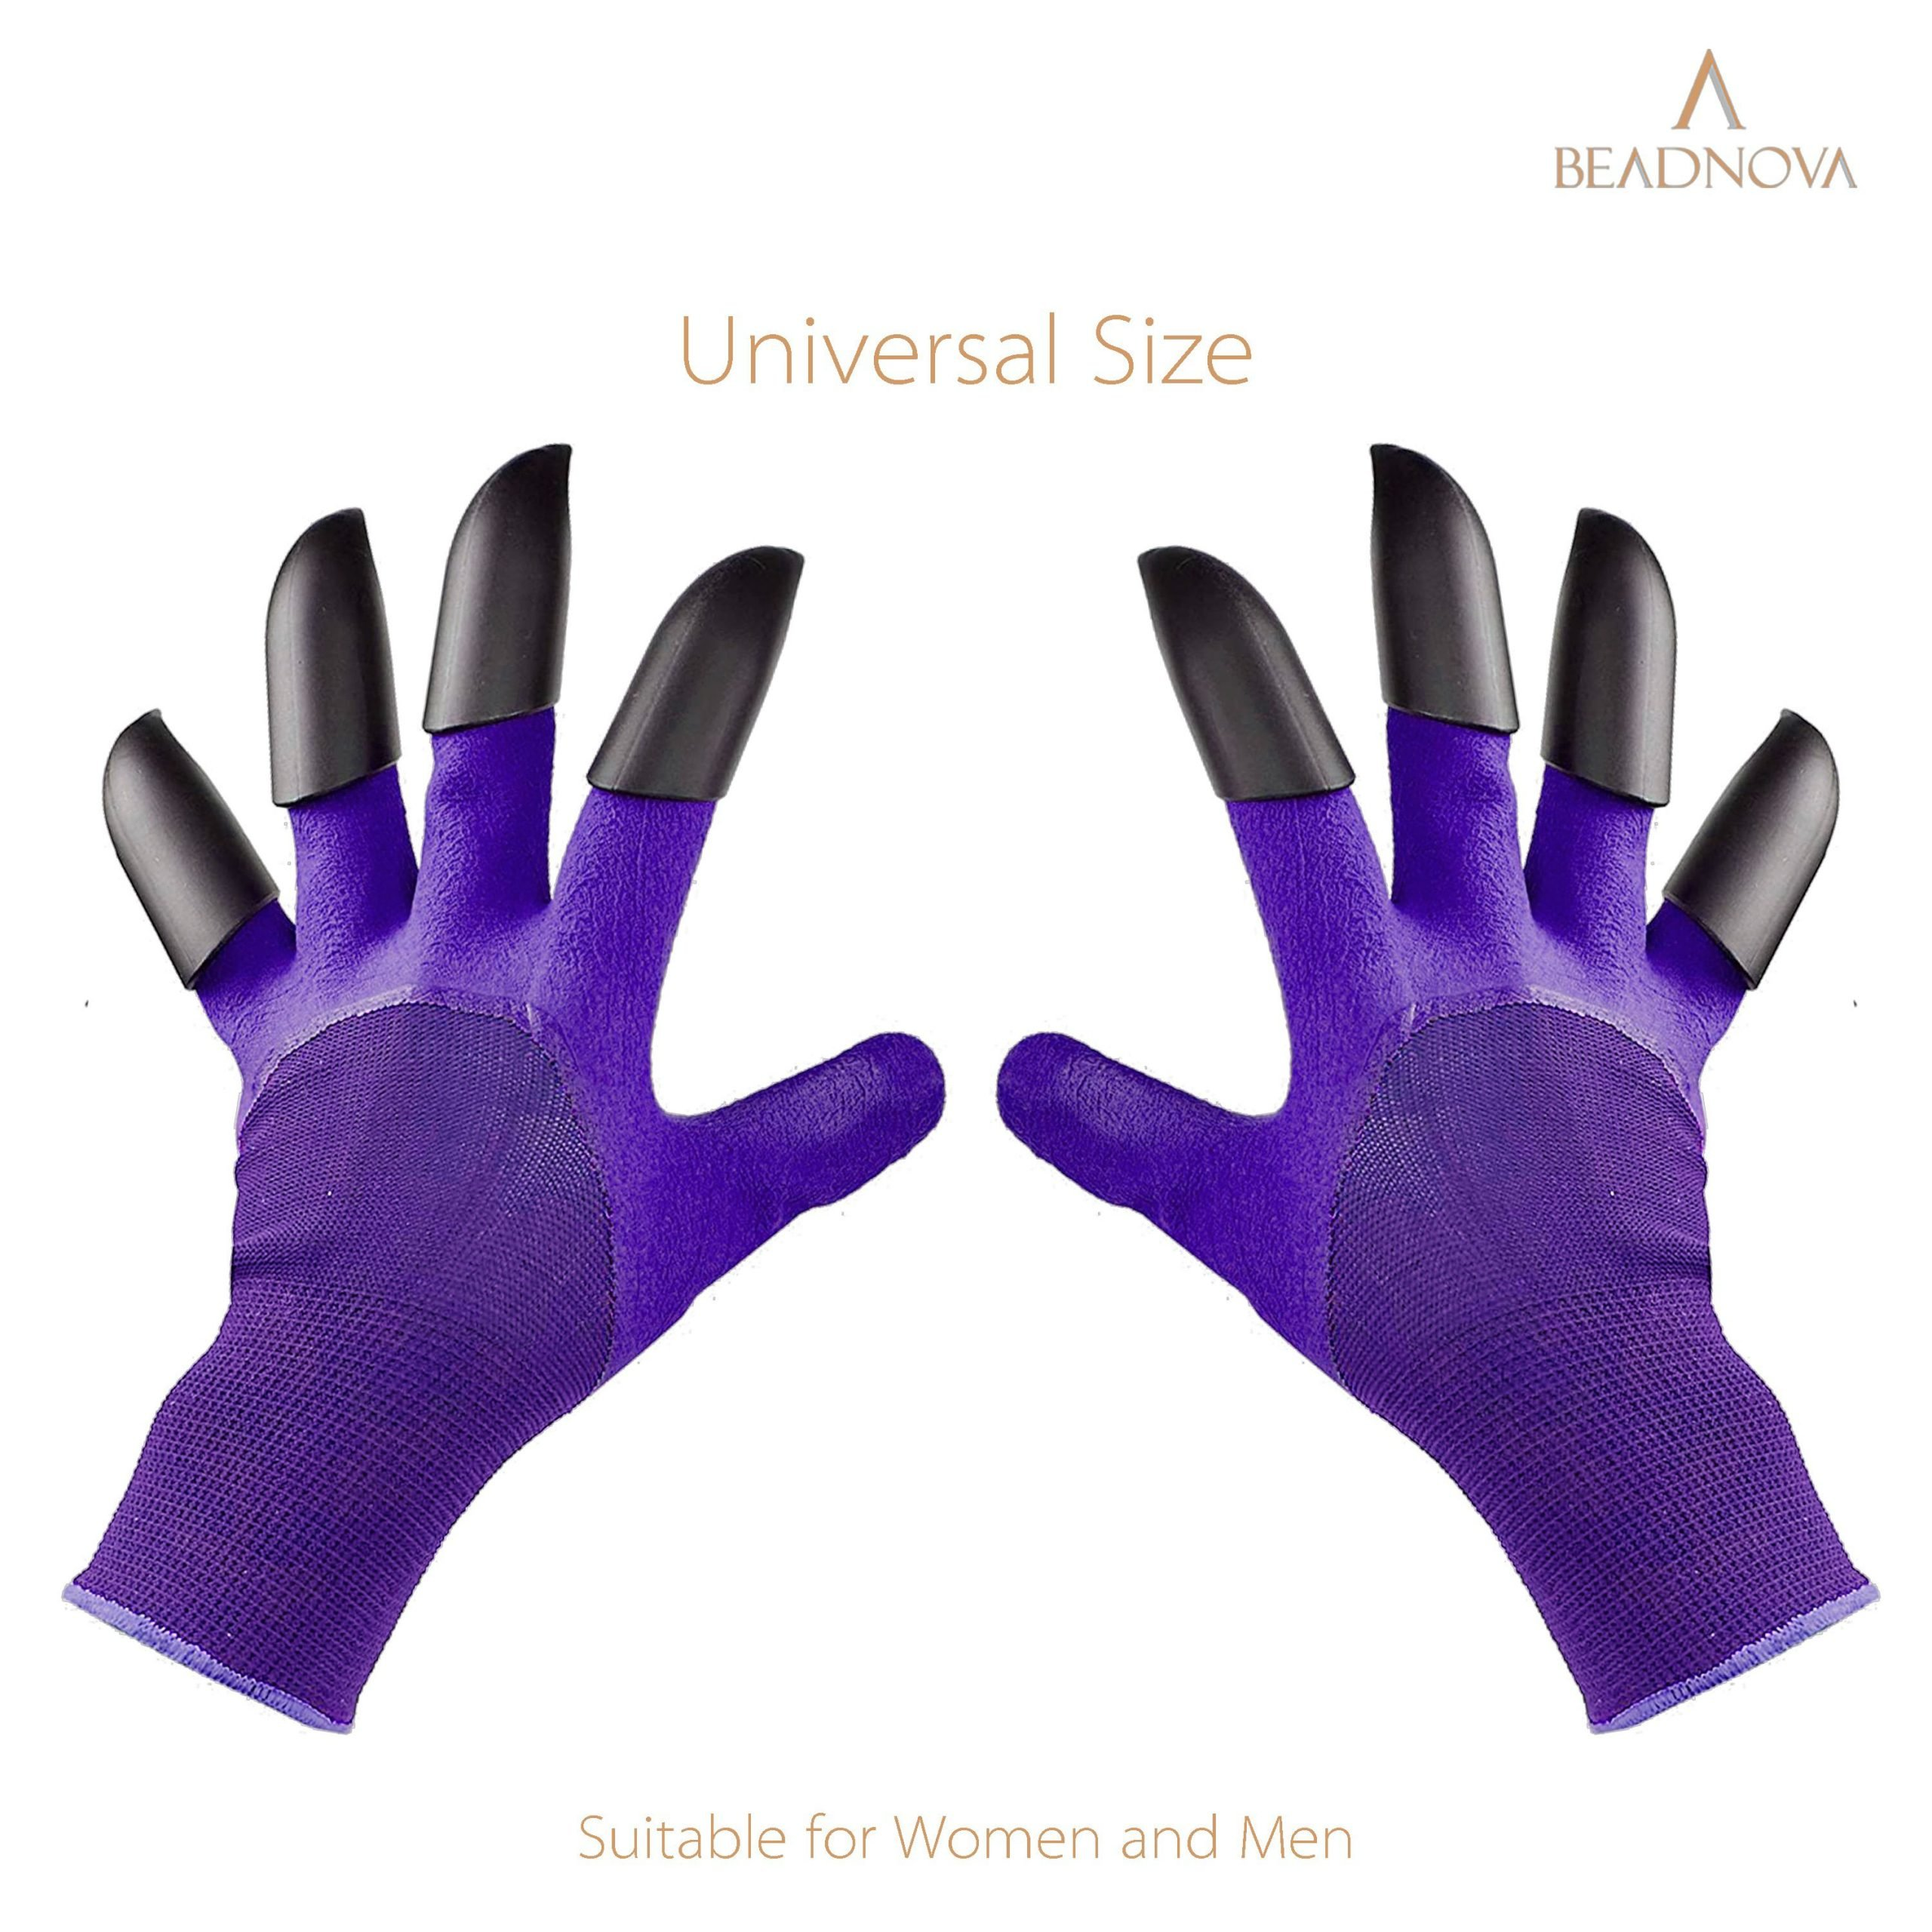 Gardening-Gloves-With-Claws-Digging-Gloves-Purple-2pairs